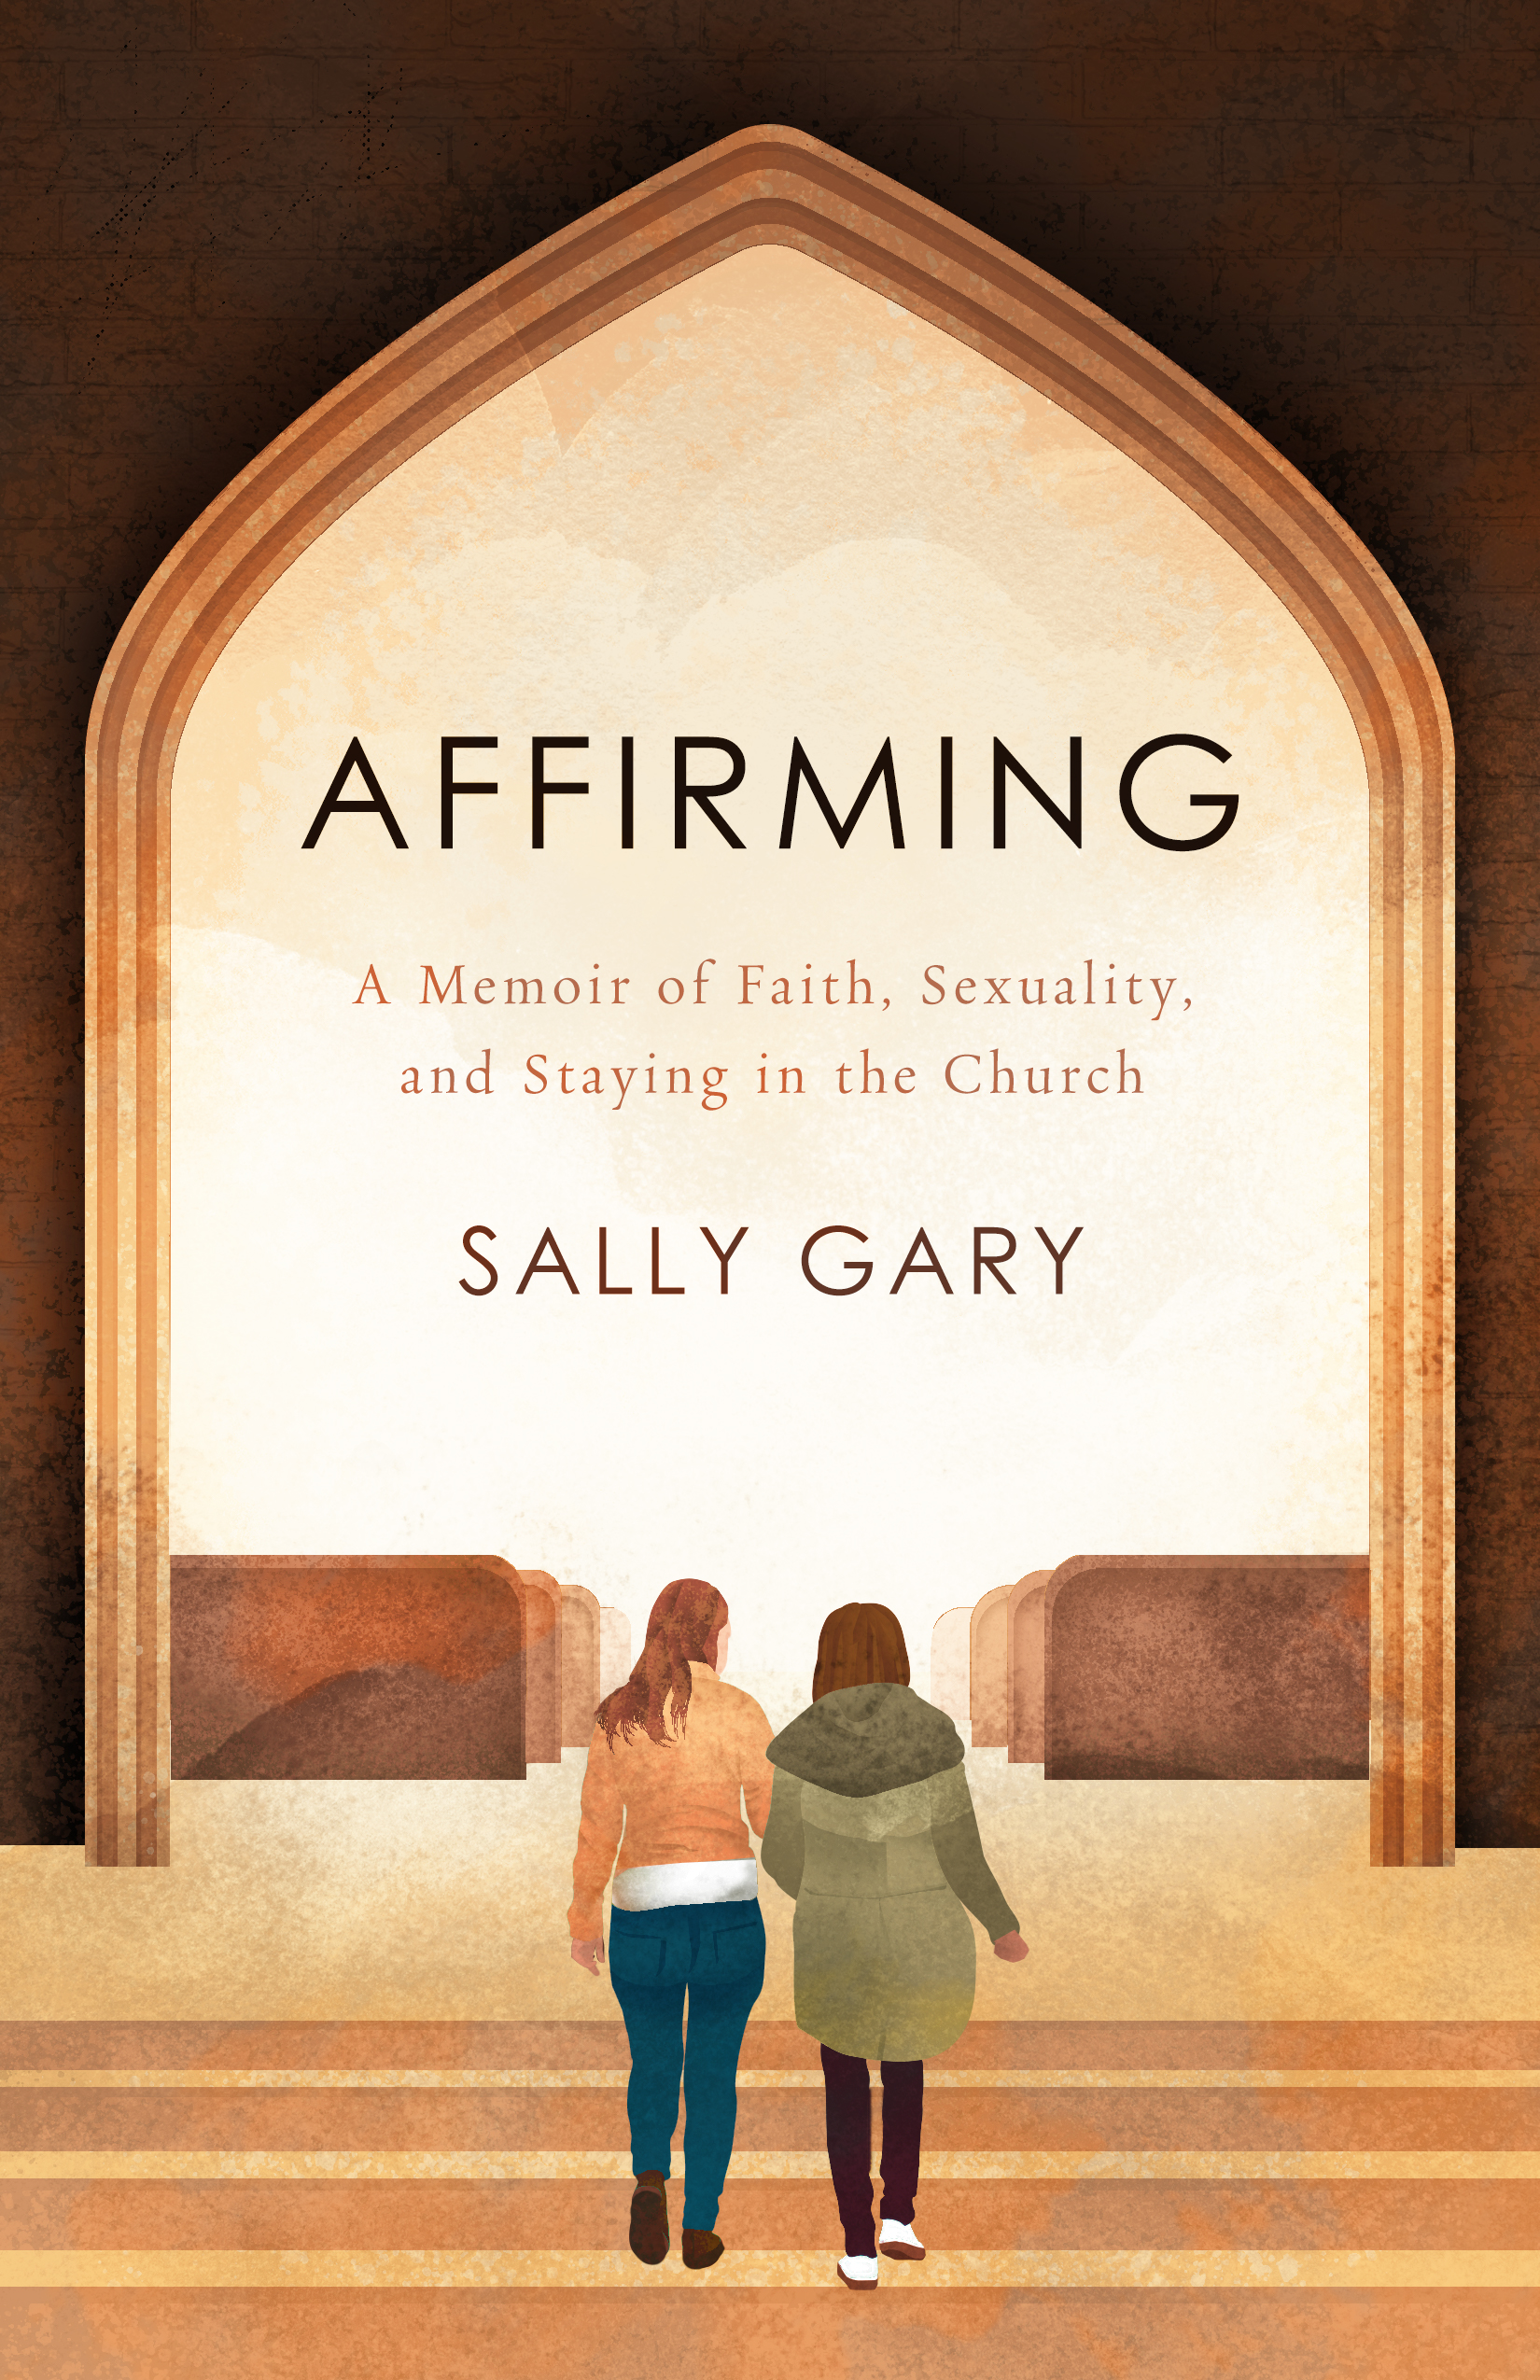 Affirming: A Memoir of Faith, Sexuality, and Staying in the Church